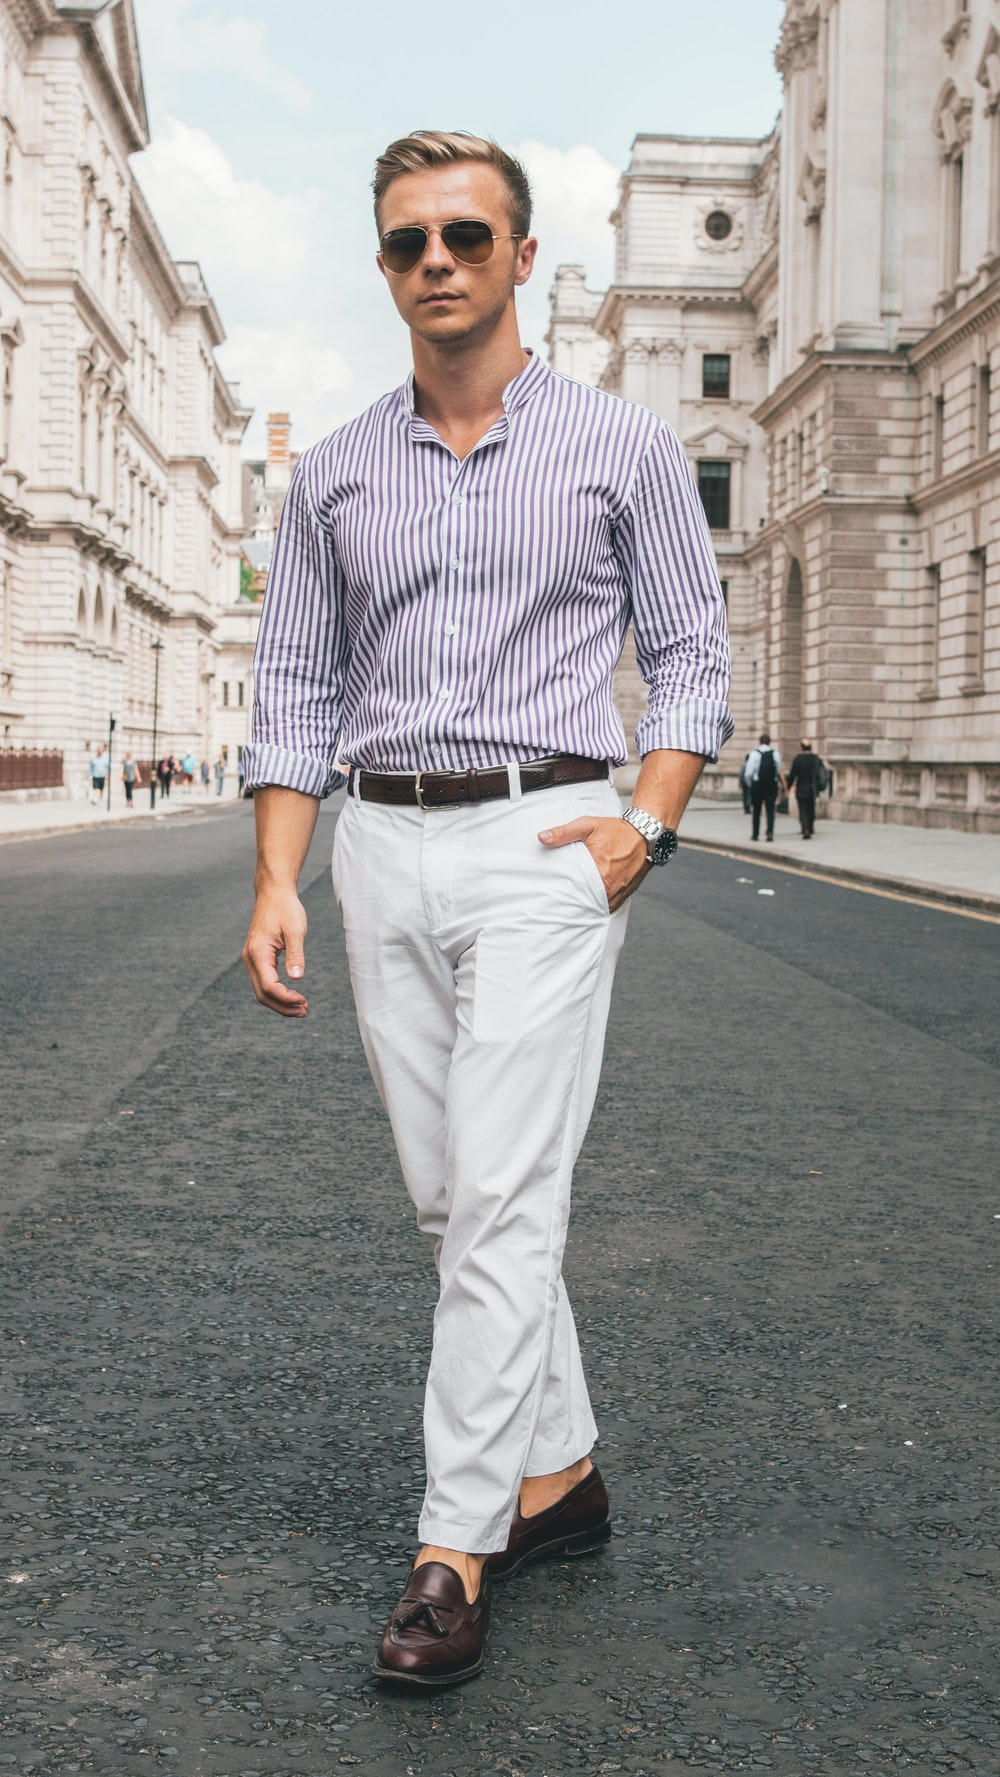 man in dress shirt and white denim jeans standing on road during daytime